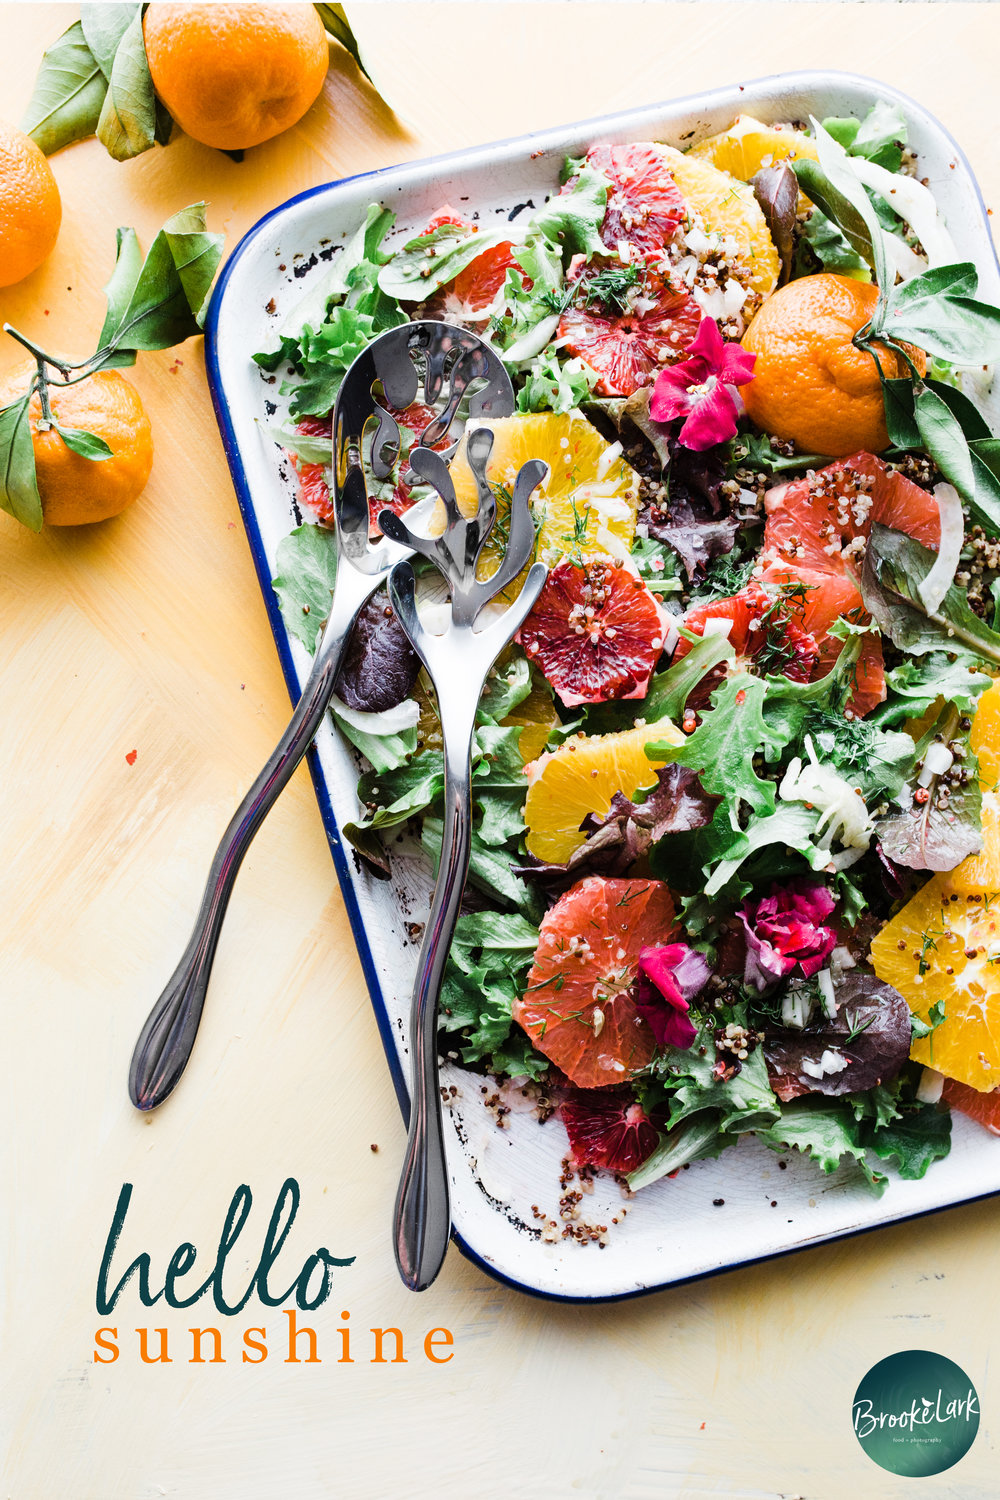 Sunshine Quinoa Citrus Salad (Vegan, Vegetarian, Splendid)  | Beautiful winter citrus is tossed with quinoa and tangy spring greens in this simple salad, which practically makes it's own vinaigrette! The flavors here are simple and splendid. A perfect dish for lazy lunches. A great way to enjoy more real food, in a naturally delicious way.